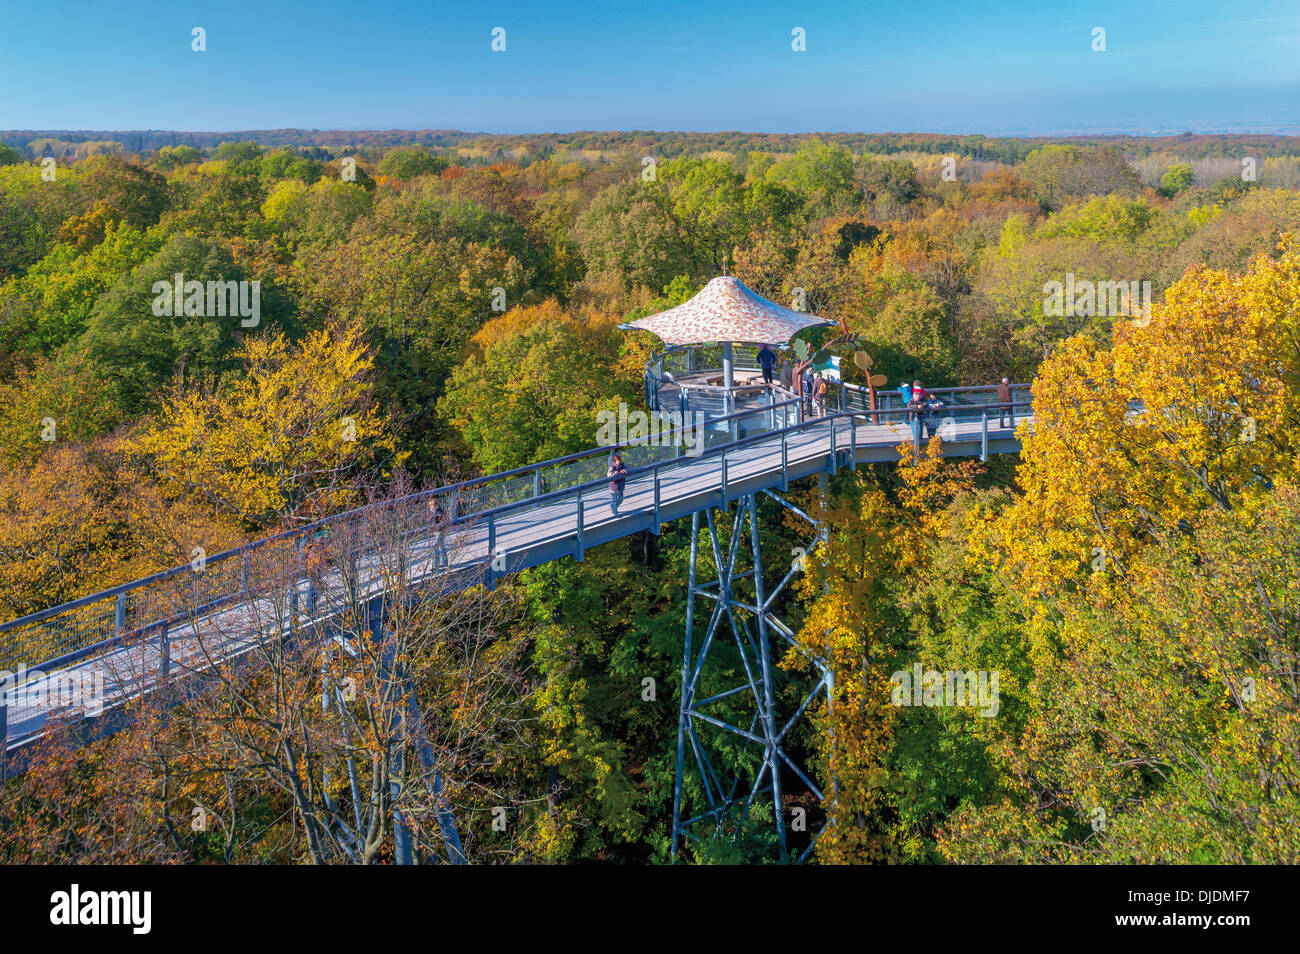 Treetop walk, Parc national du Hainich, Bad Langensalza, Thuringe, Allemagne Photo Stock